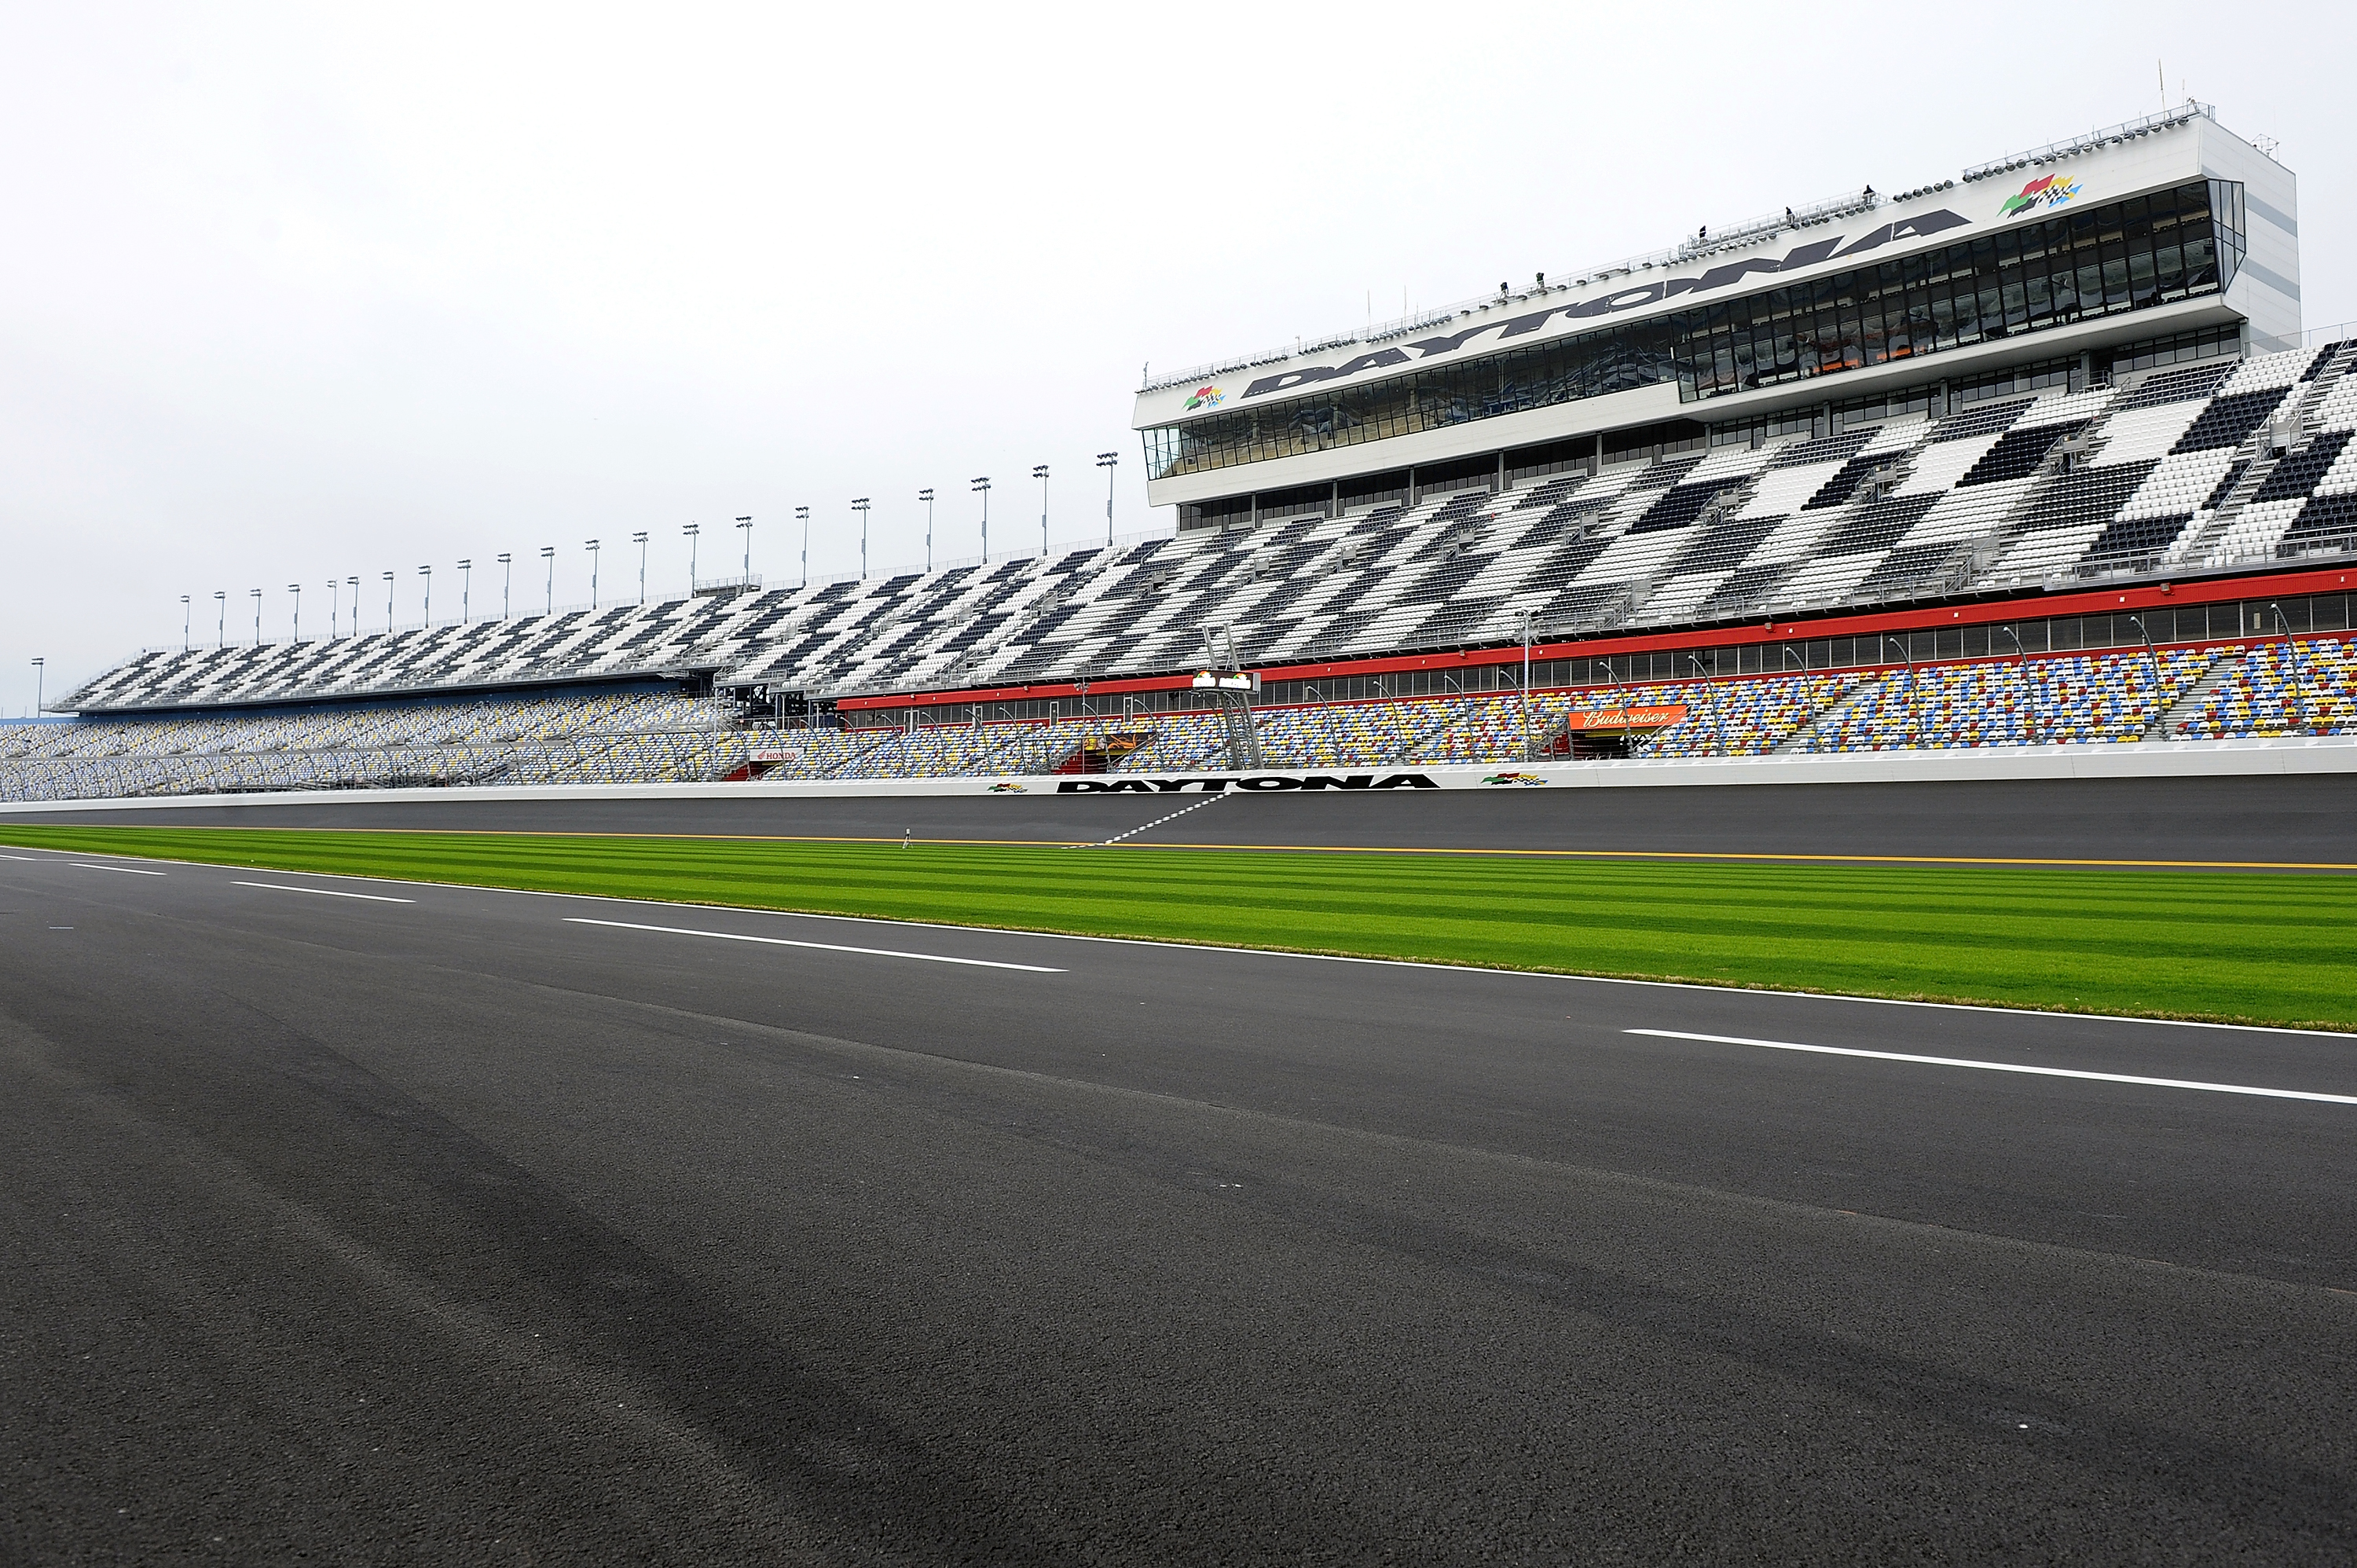 Daytona: the venue that should determine who walks away with the Sprint Cup Championship.